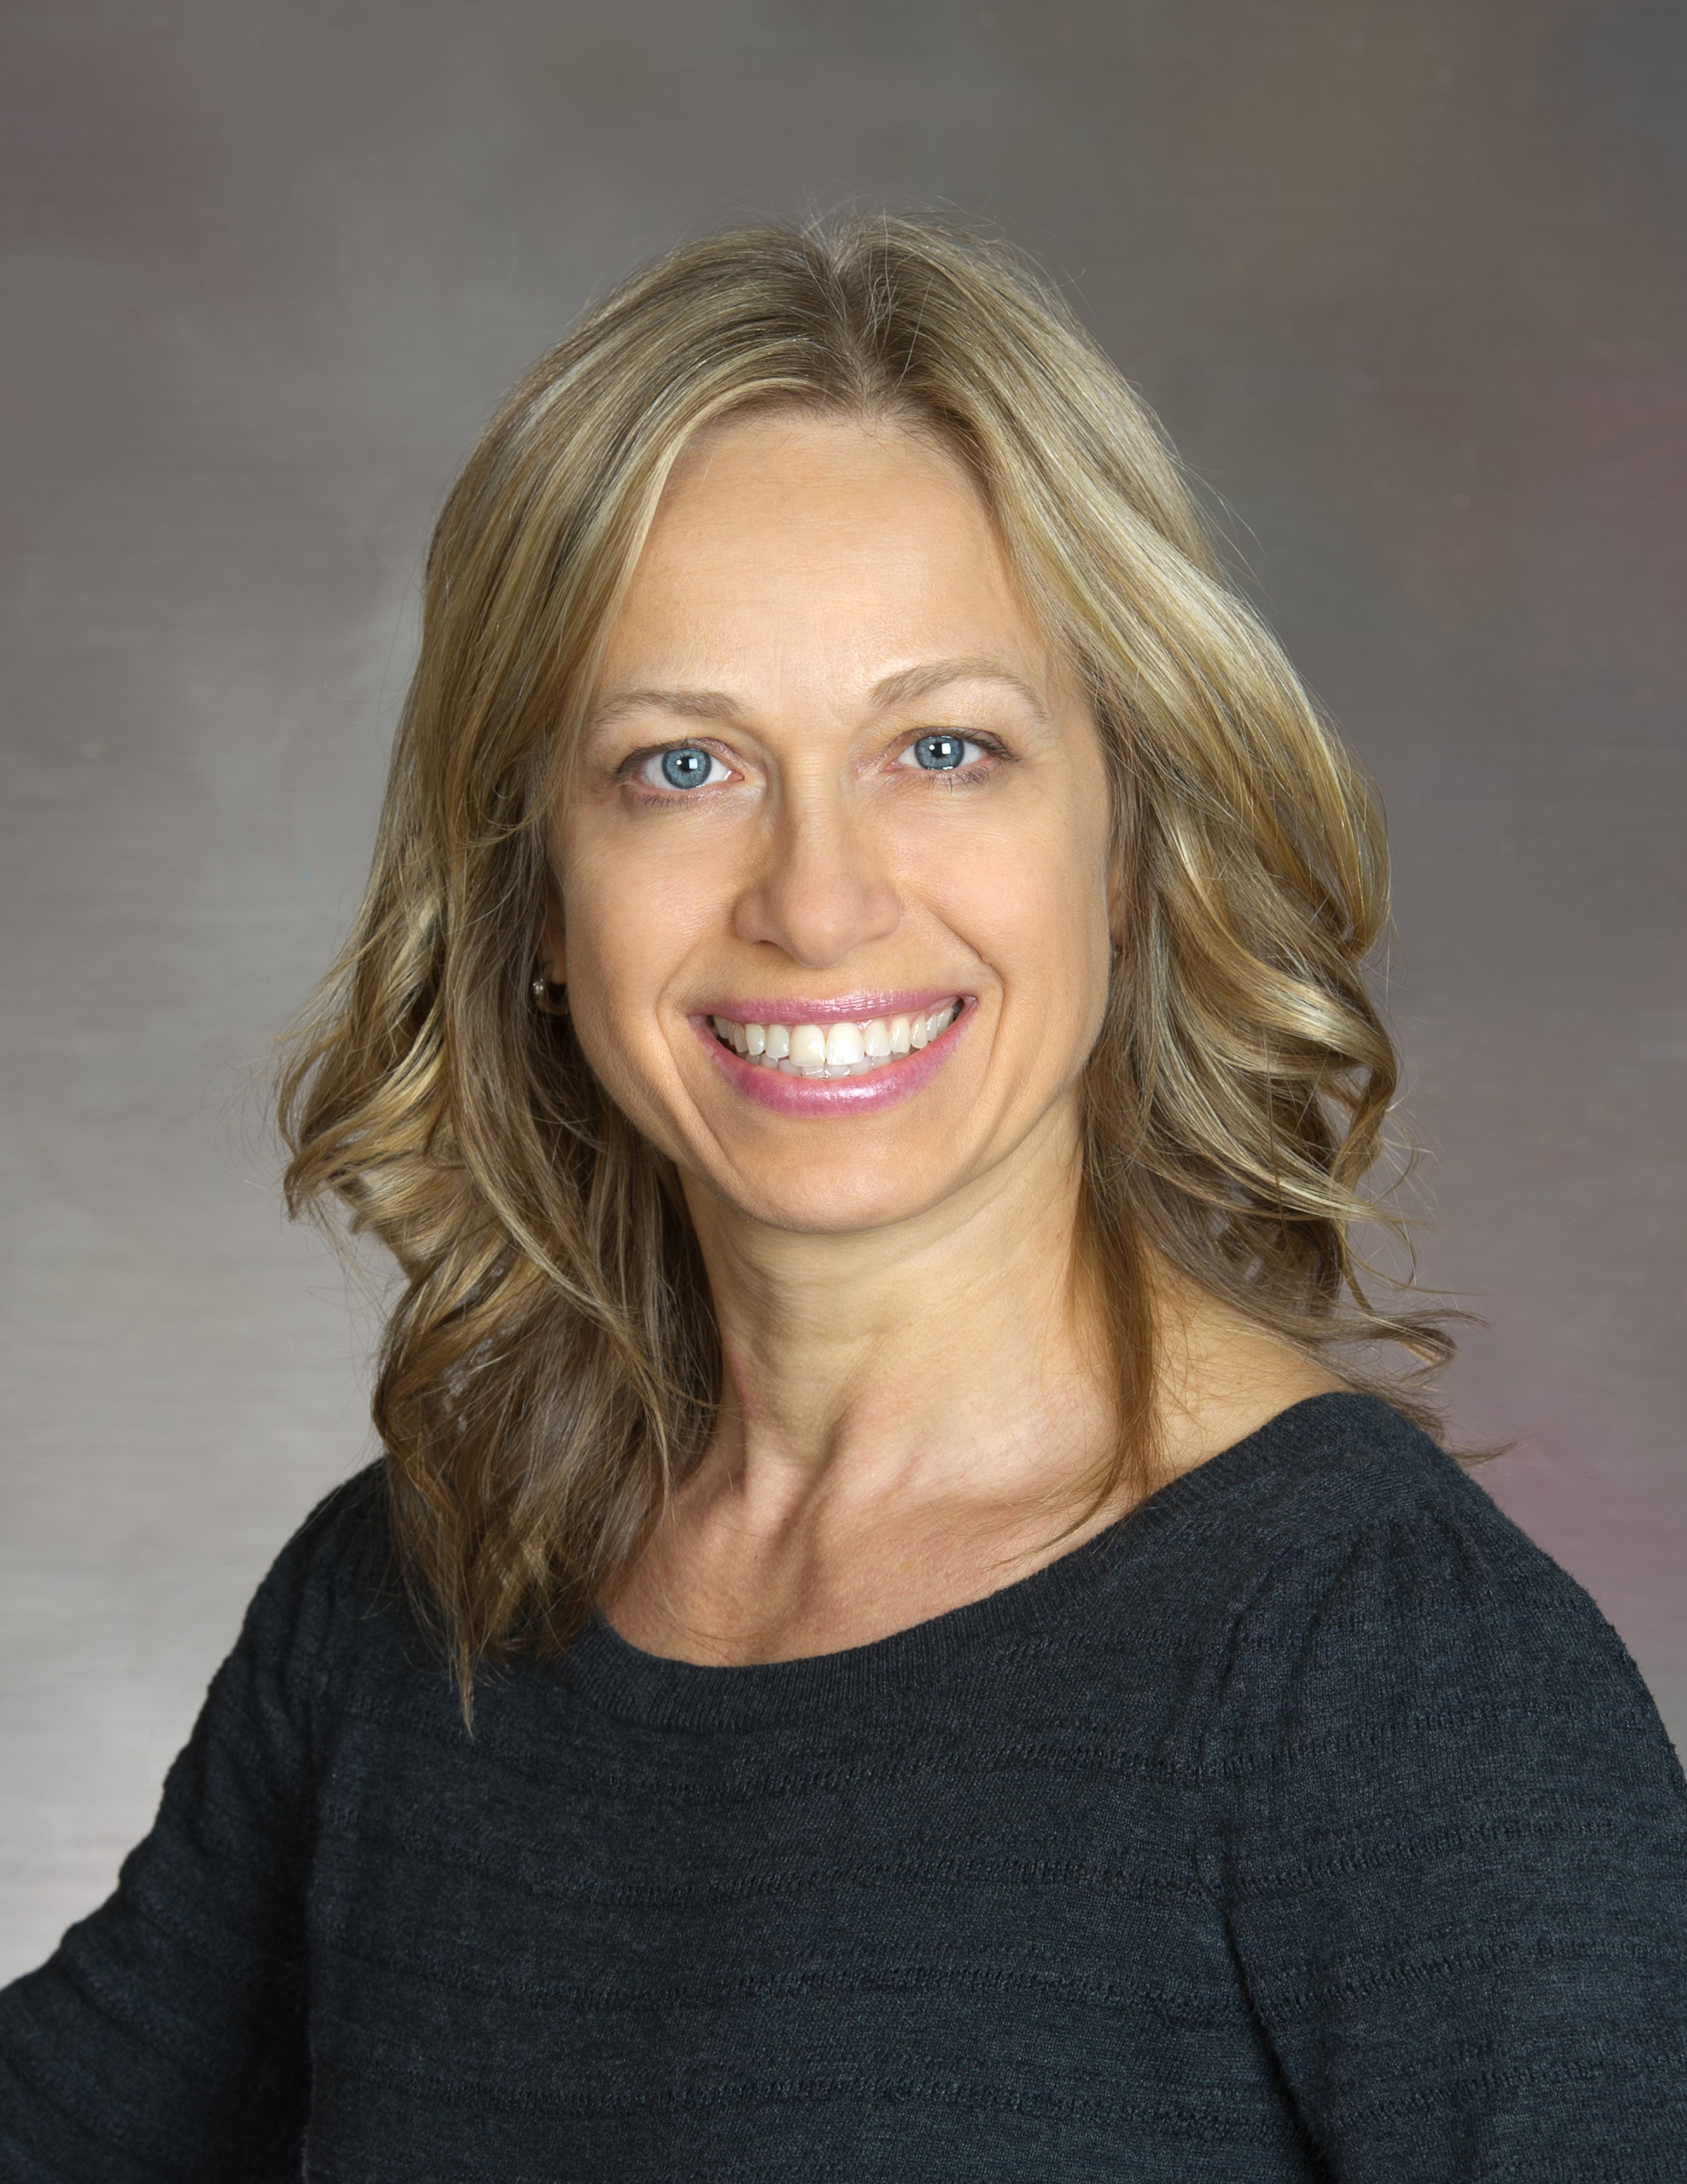 Dr. Renee Watts is a general dentist at Ardent Care in Springfield, OR.